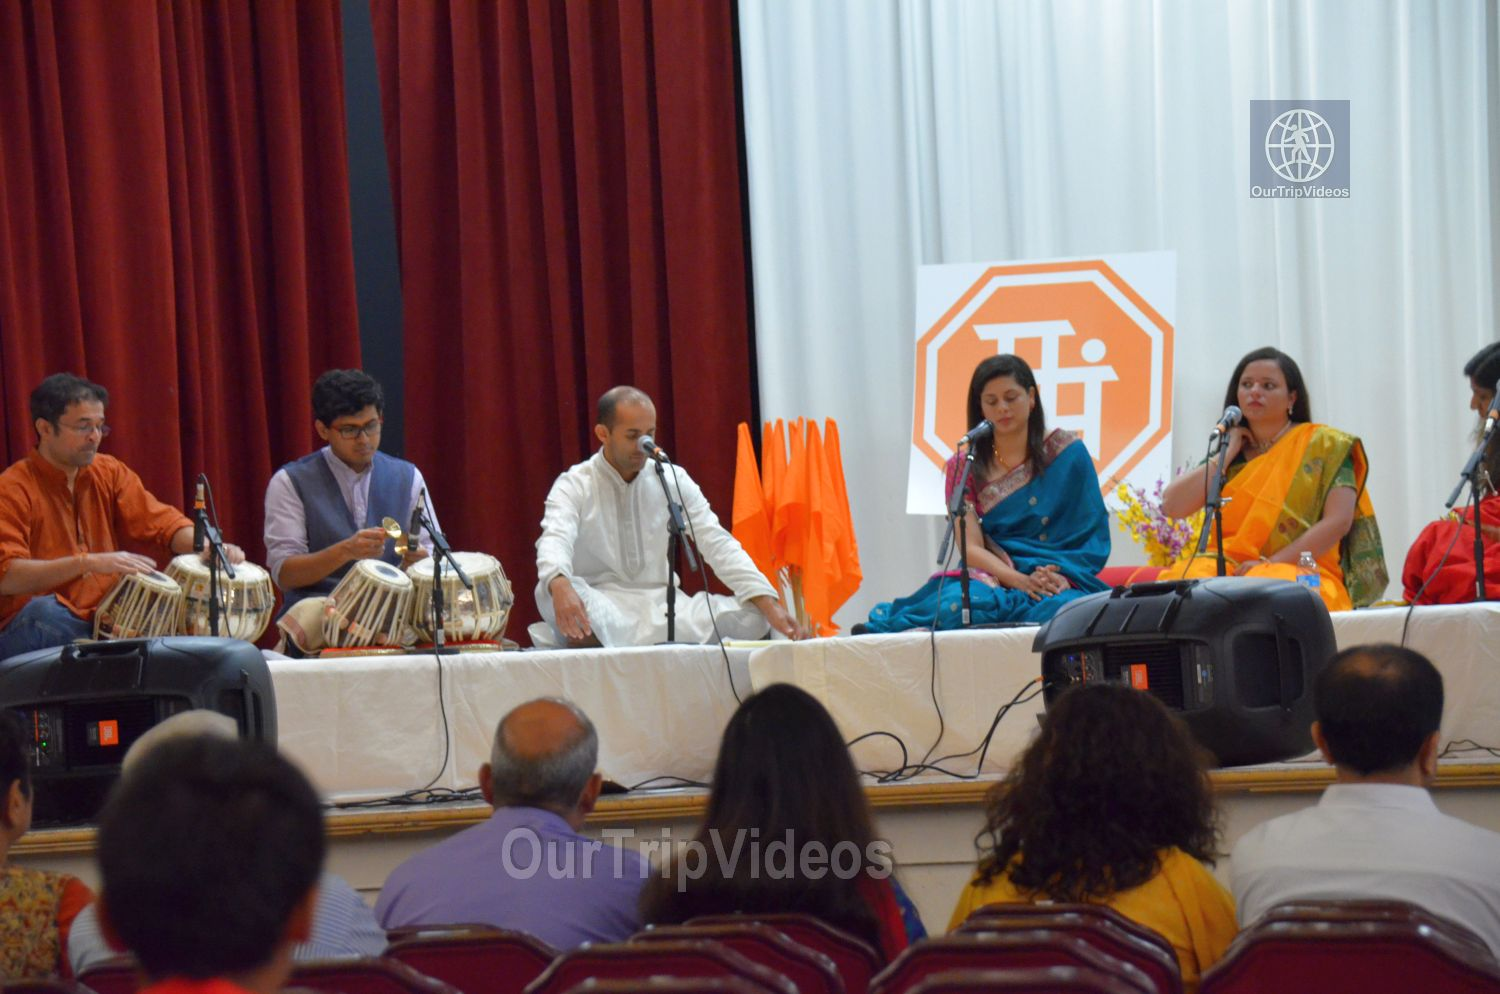 Ganeshotsav by Maharashtra Mandal Bay Area, Milpitas, CA, USA - Picture 8 of 25